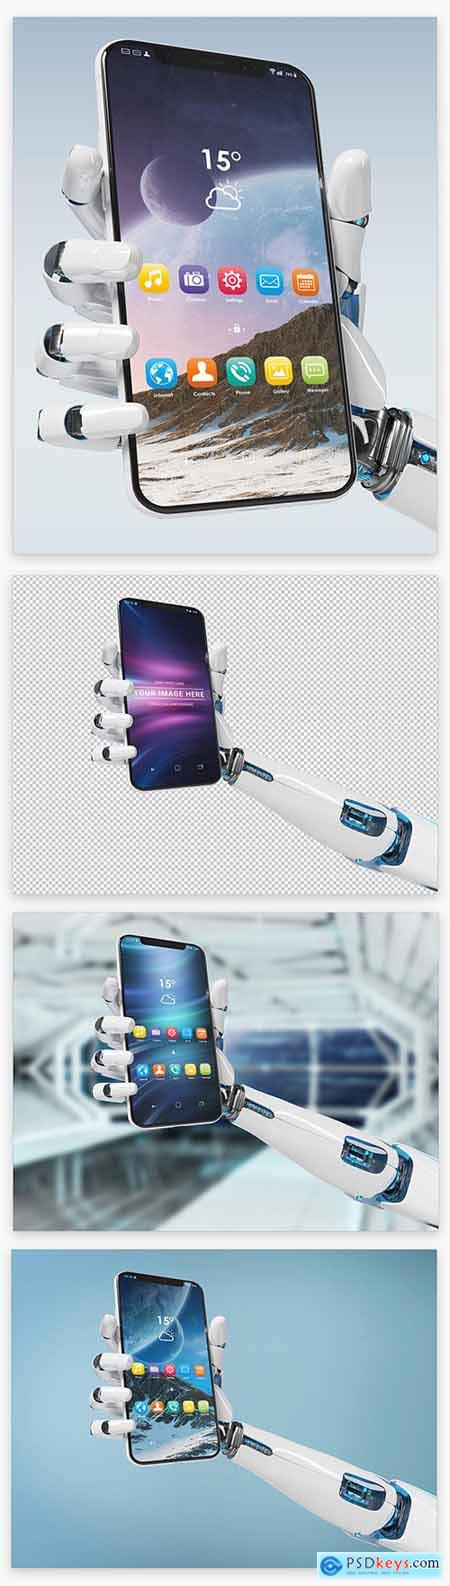 Isolated Smartphone in Robot Hand Mockup 220288384